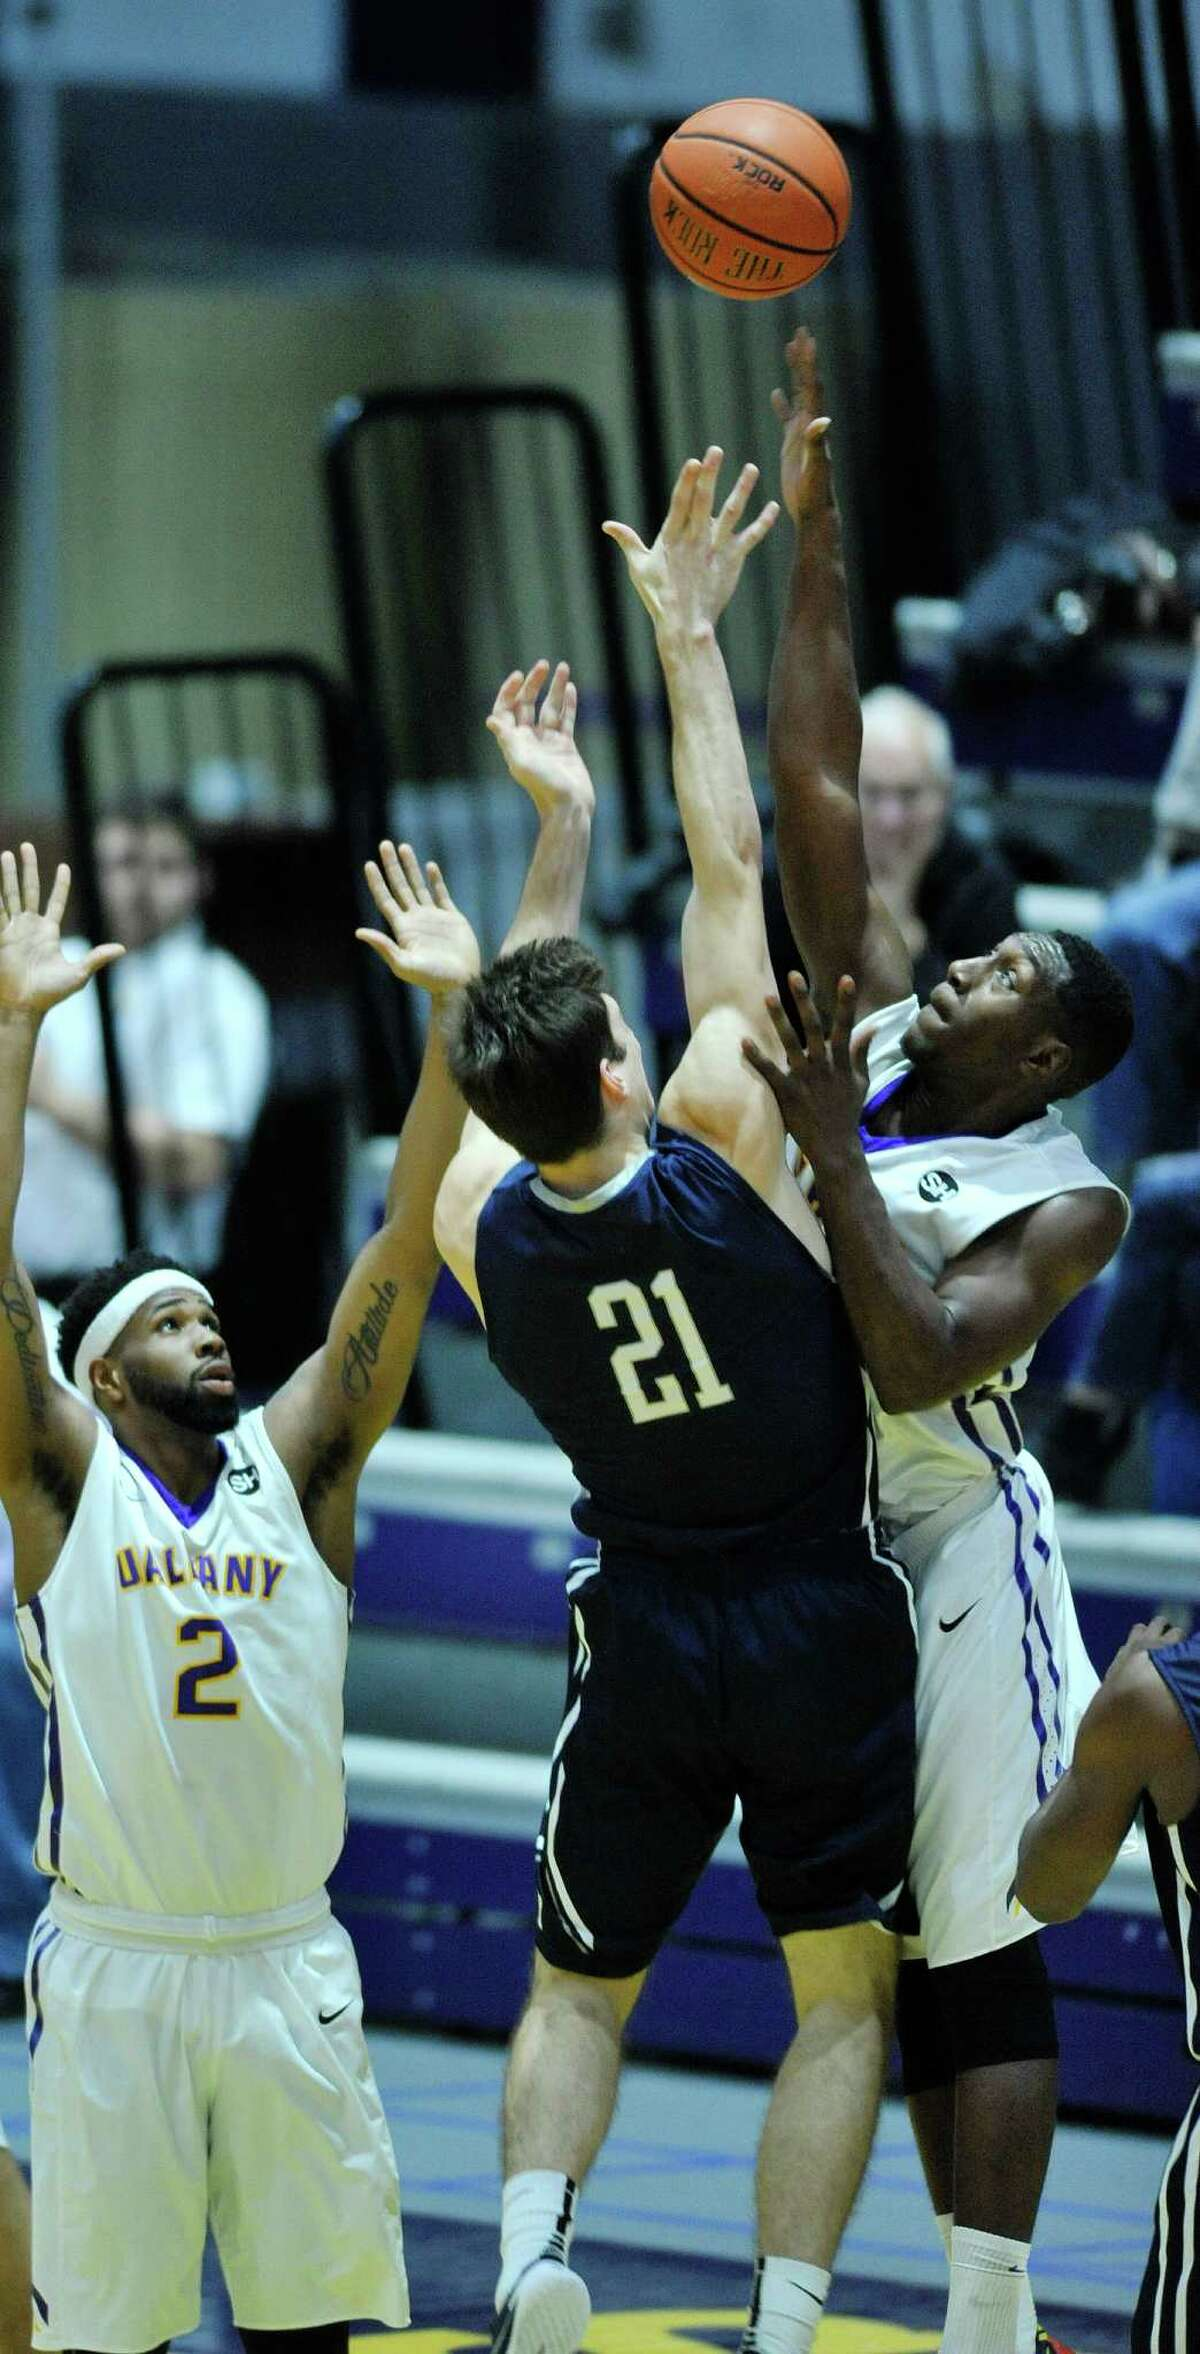 Nick Victor of Yale, left, puts up a shot over Travis Charles of UAlbany during their game on Sunday, Nov. 29, 2015, in Albany, N.Y. (Paul Buckowski / Times Union)